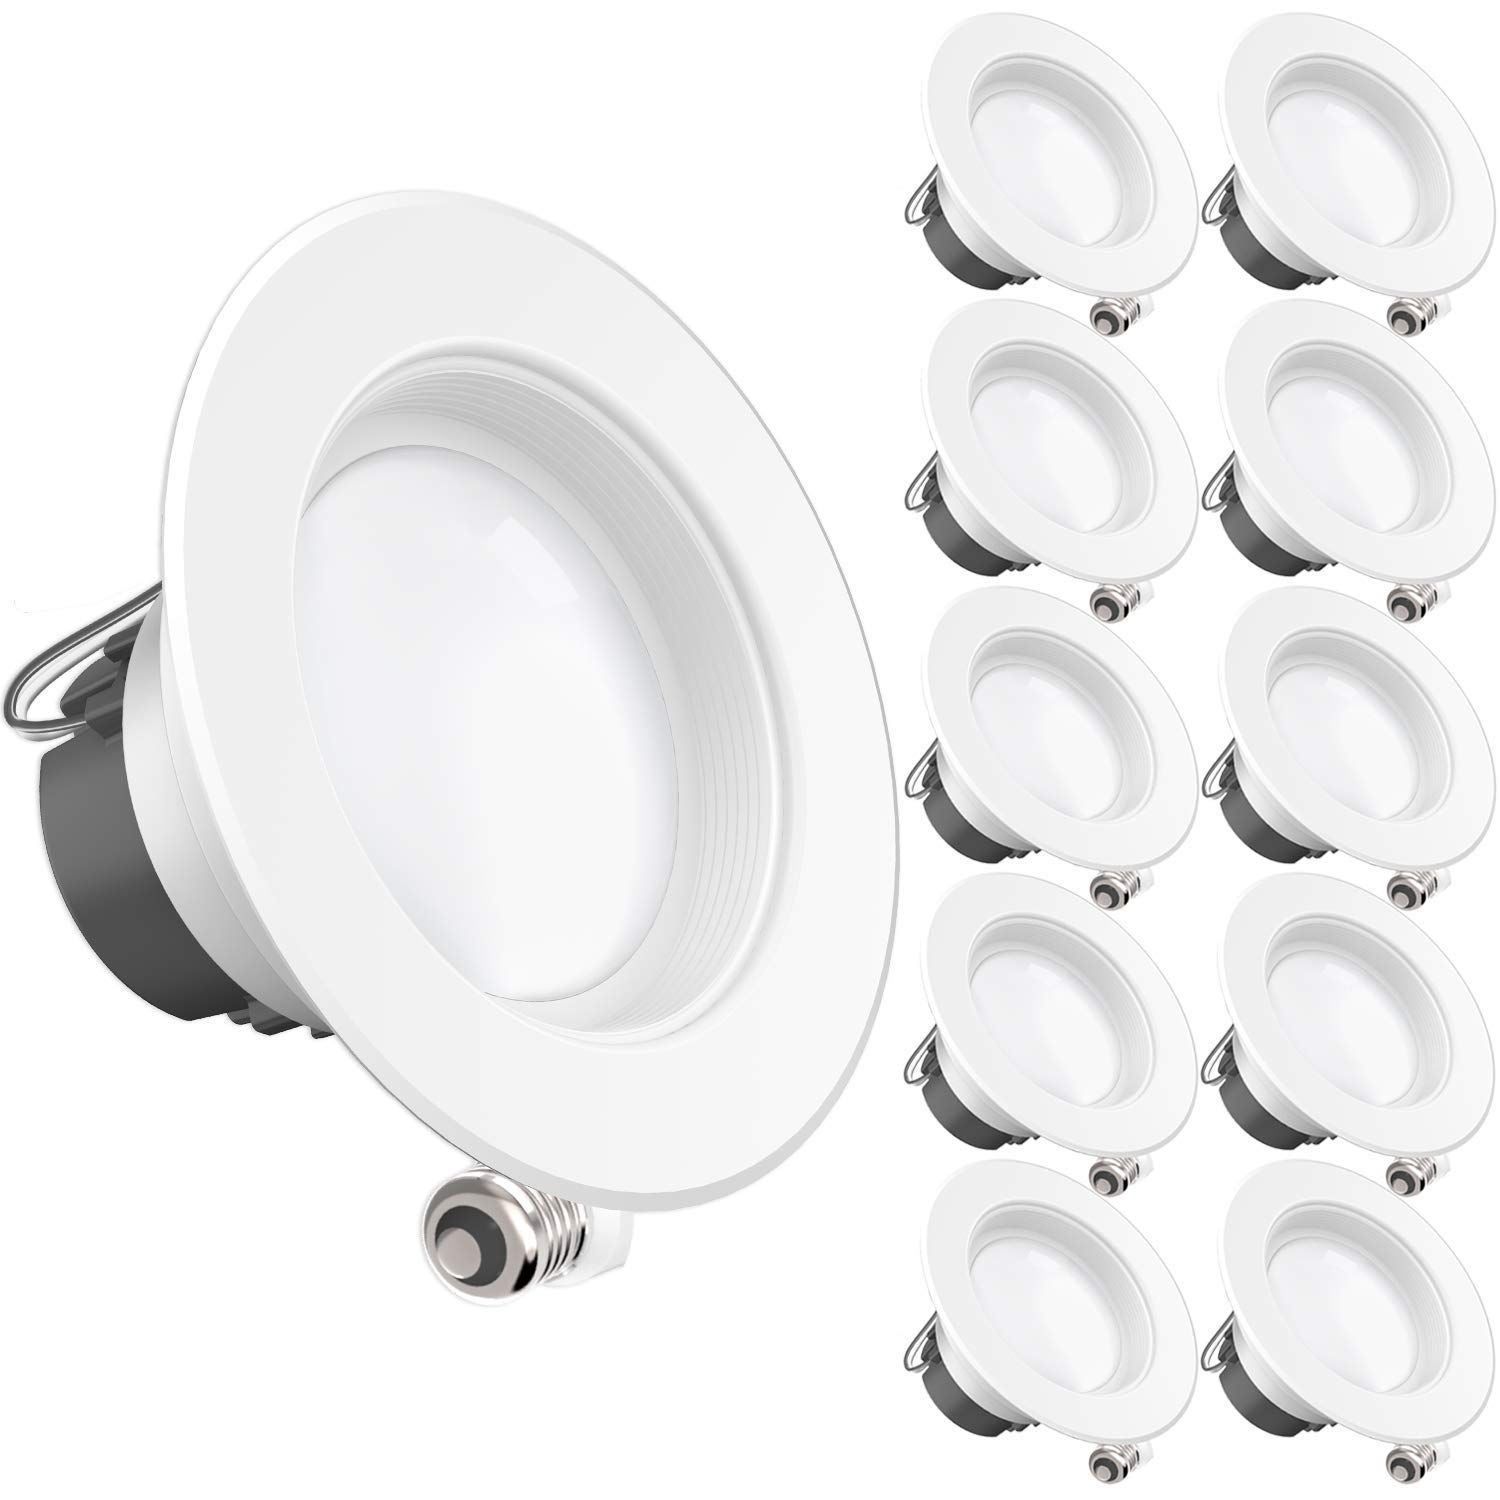 Sunco Lighting 10 Pack 11watt 4 Inch Energy Star Ul Listed Dimmable Led Downlight Retrofit Baf Downlights Retrofit Recessed Lighting Recessed Lighting Kits